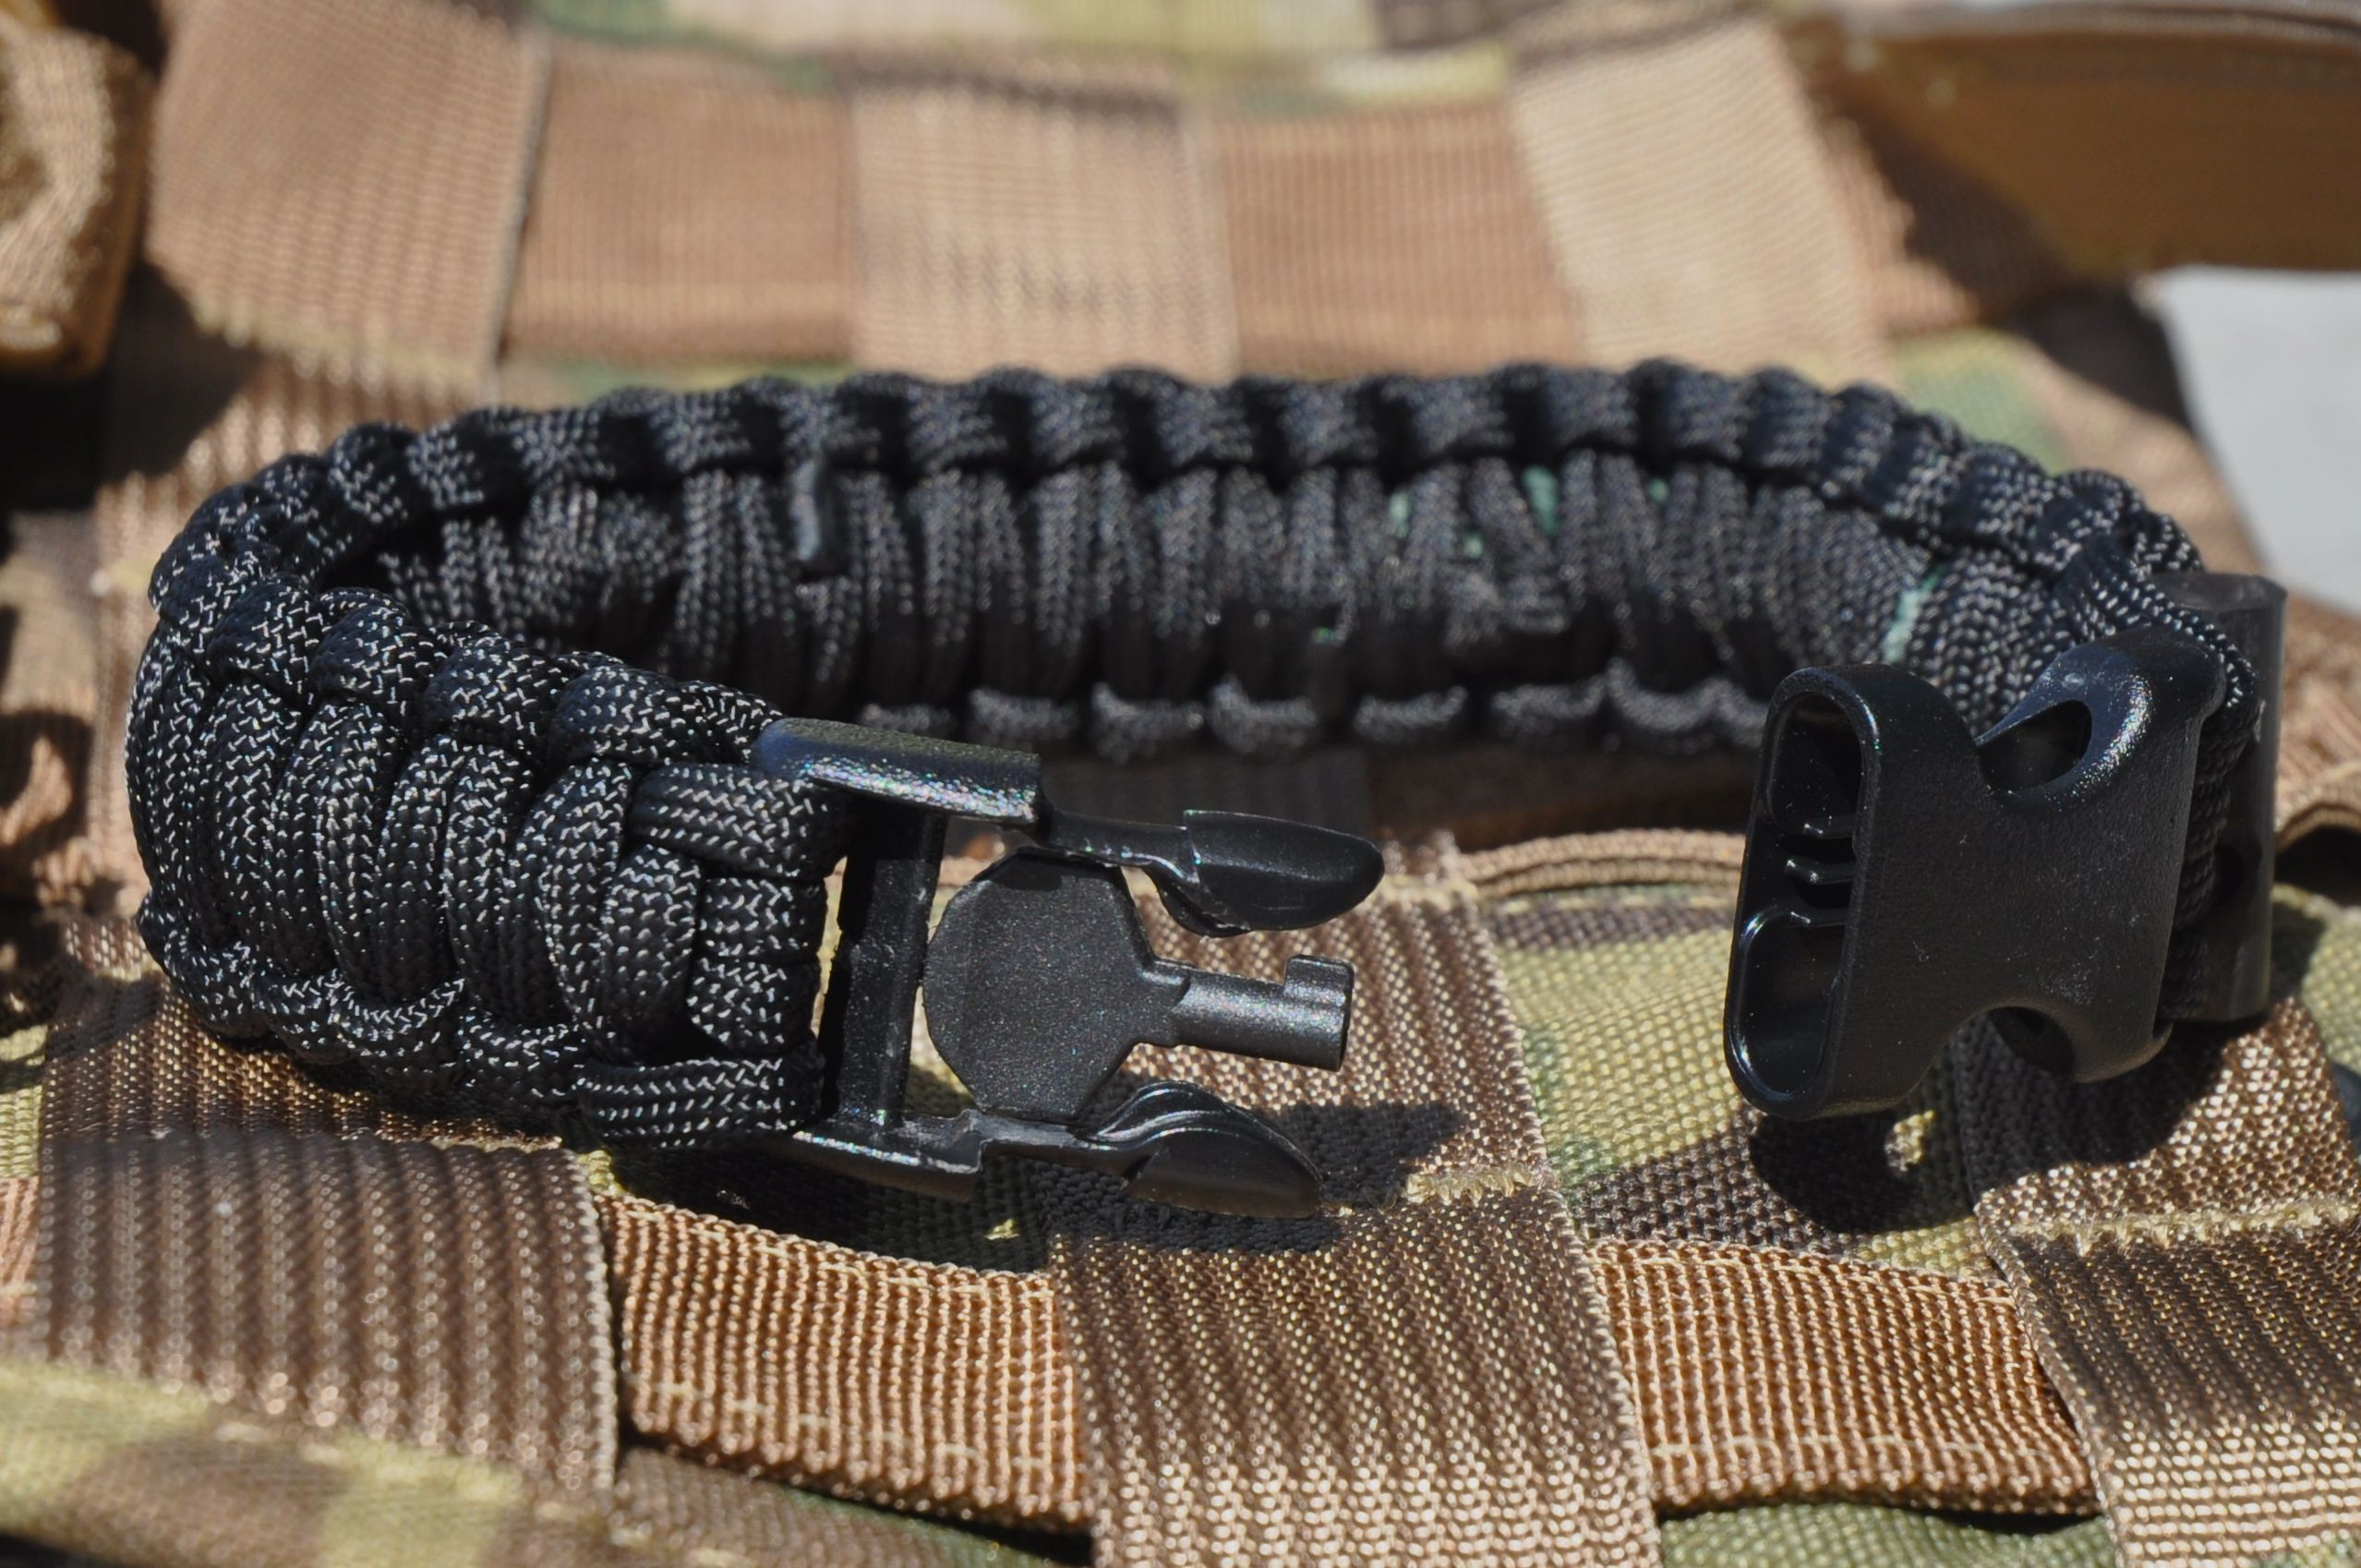 It has a handcuff key and the paracord and be can be used to ...